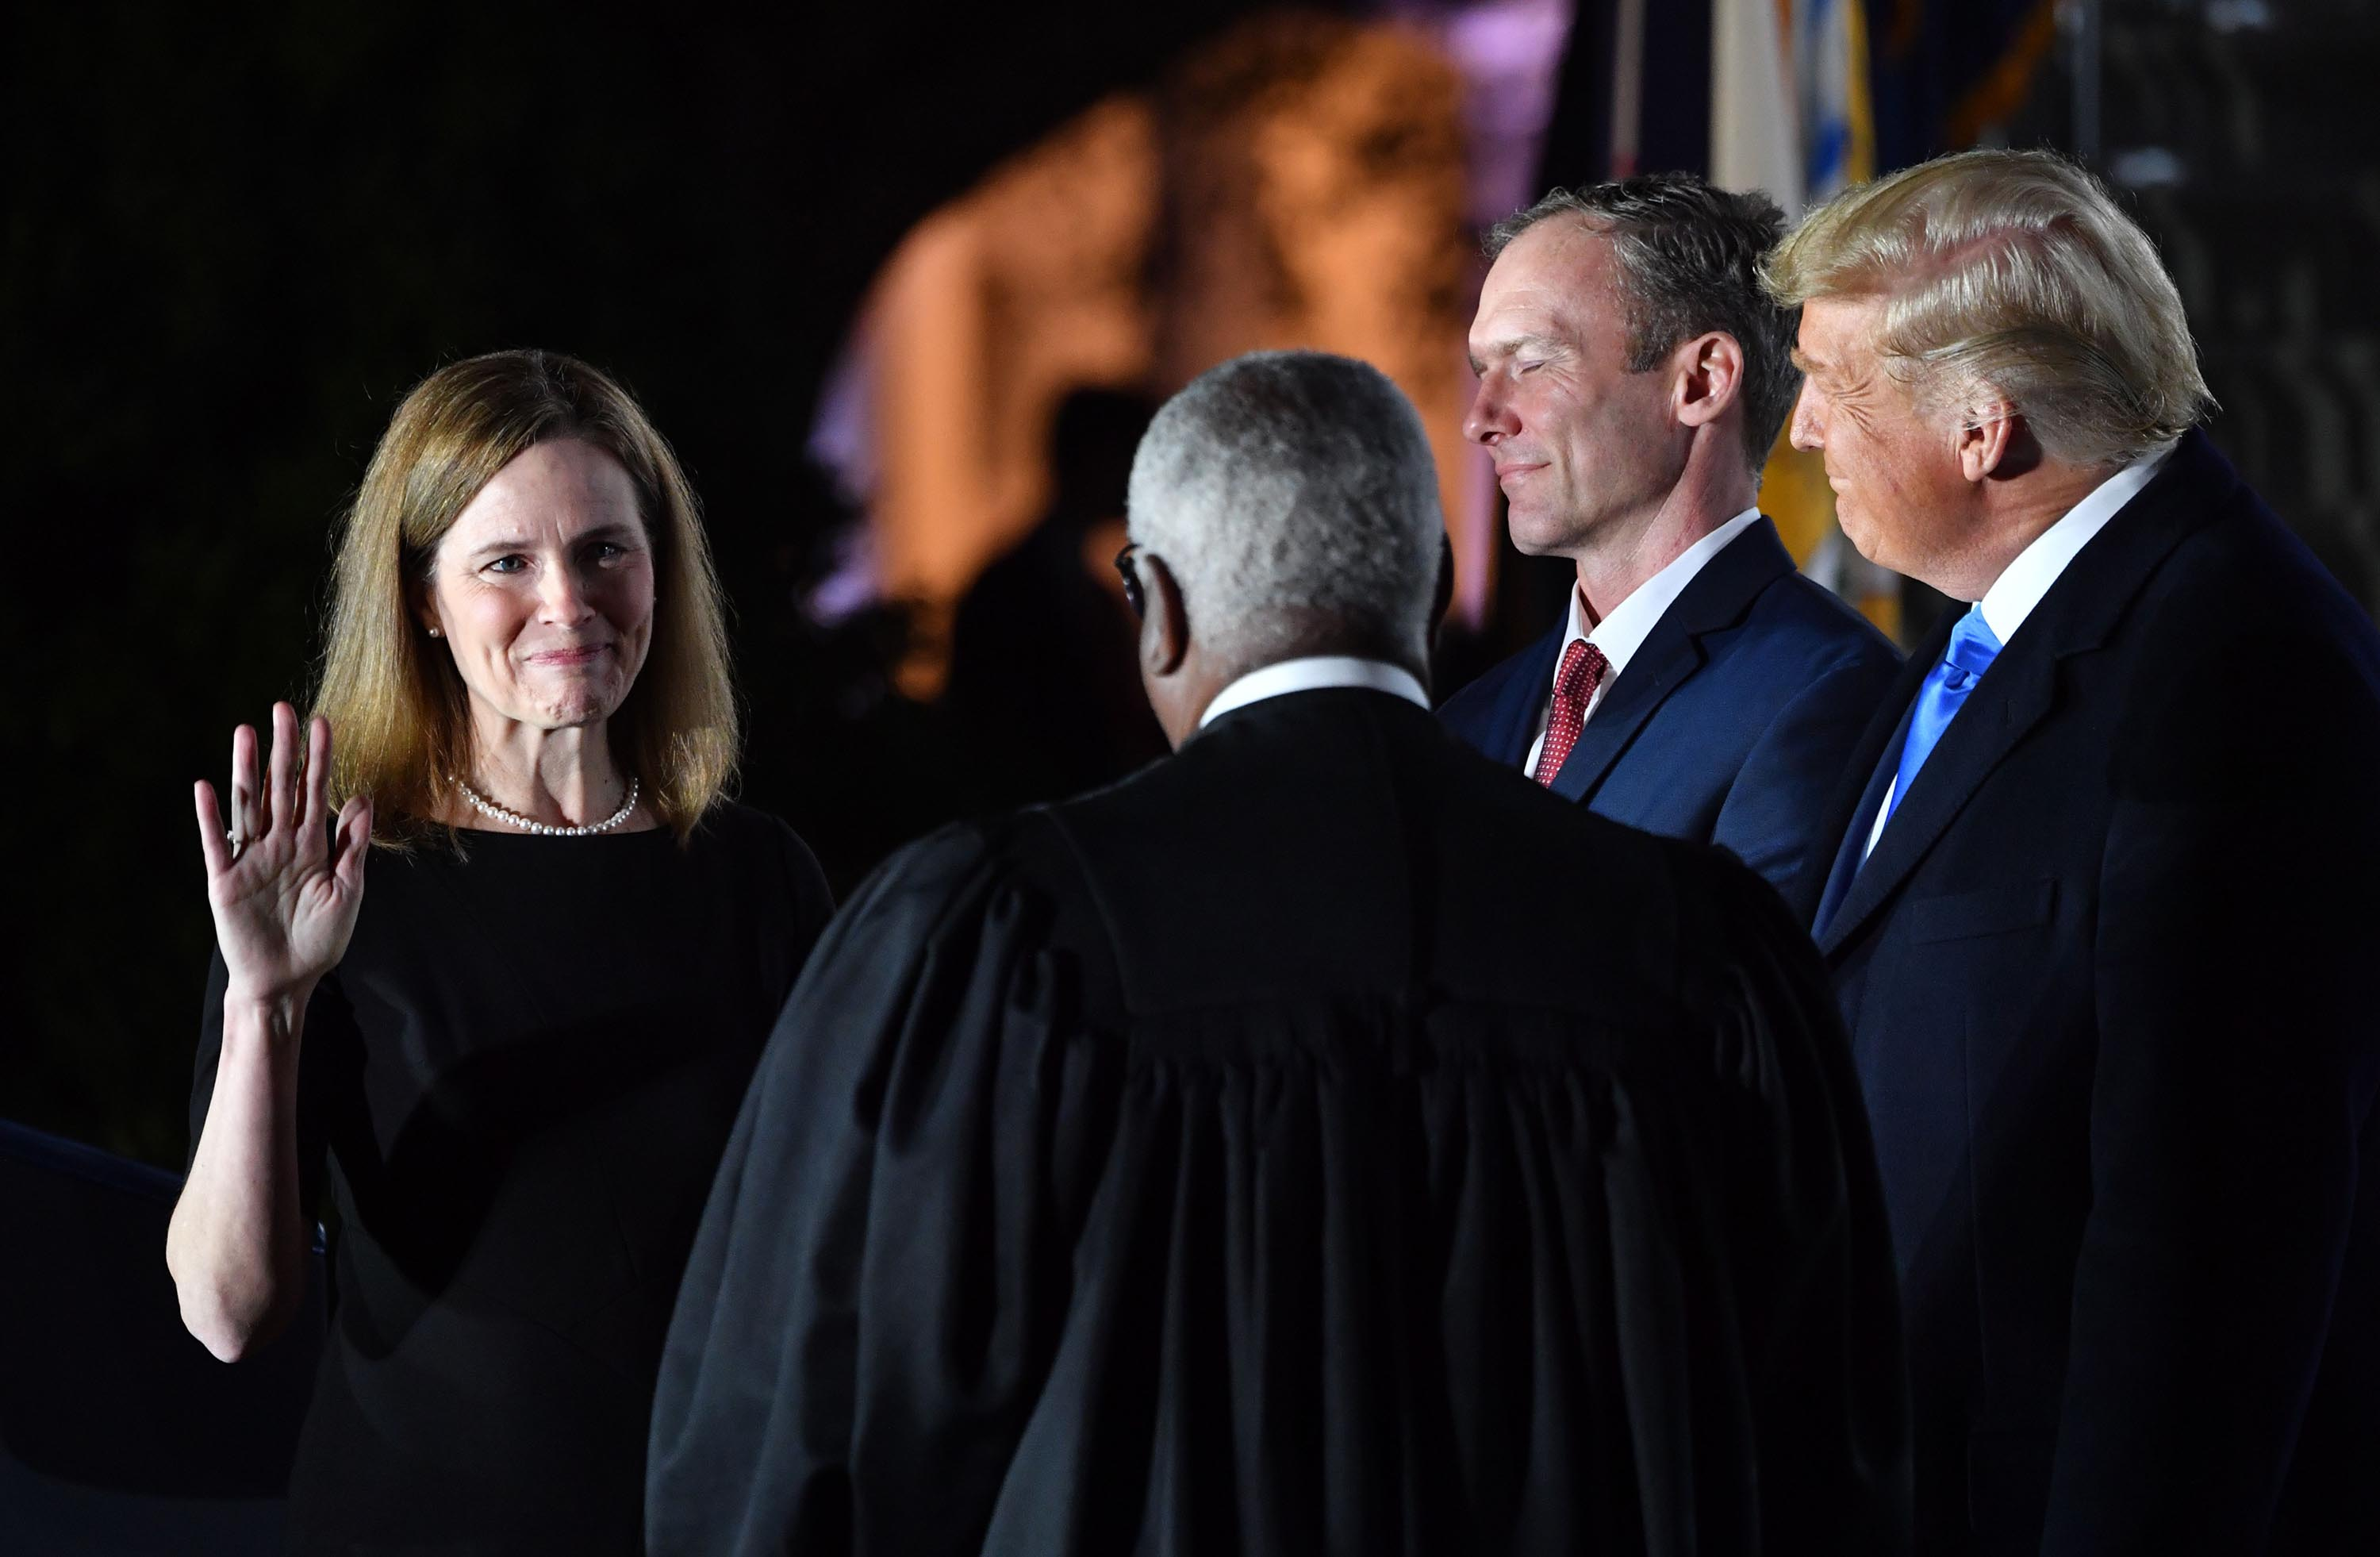 Justice Amy Coney Barrett's confirmation triggers a prime time celebration by the GOP